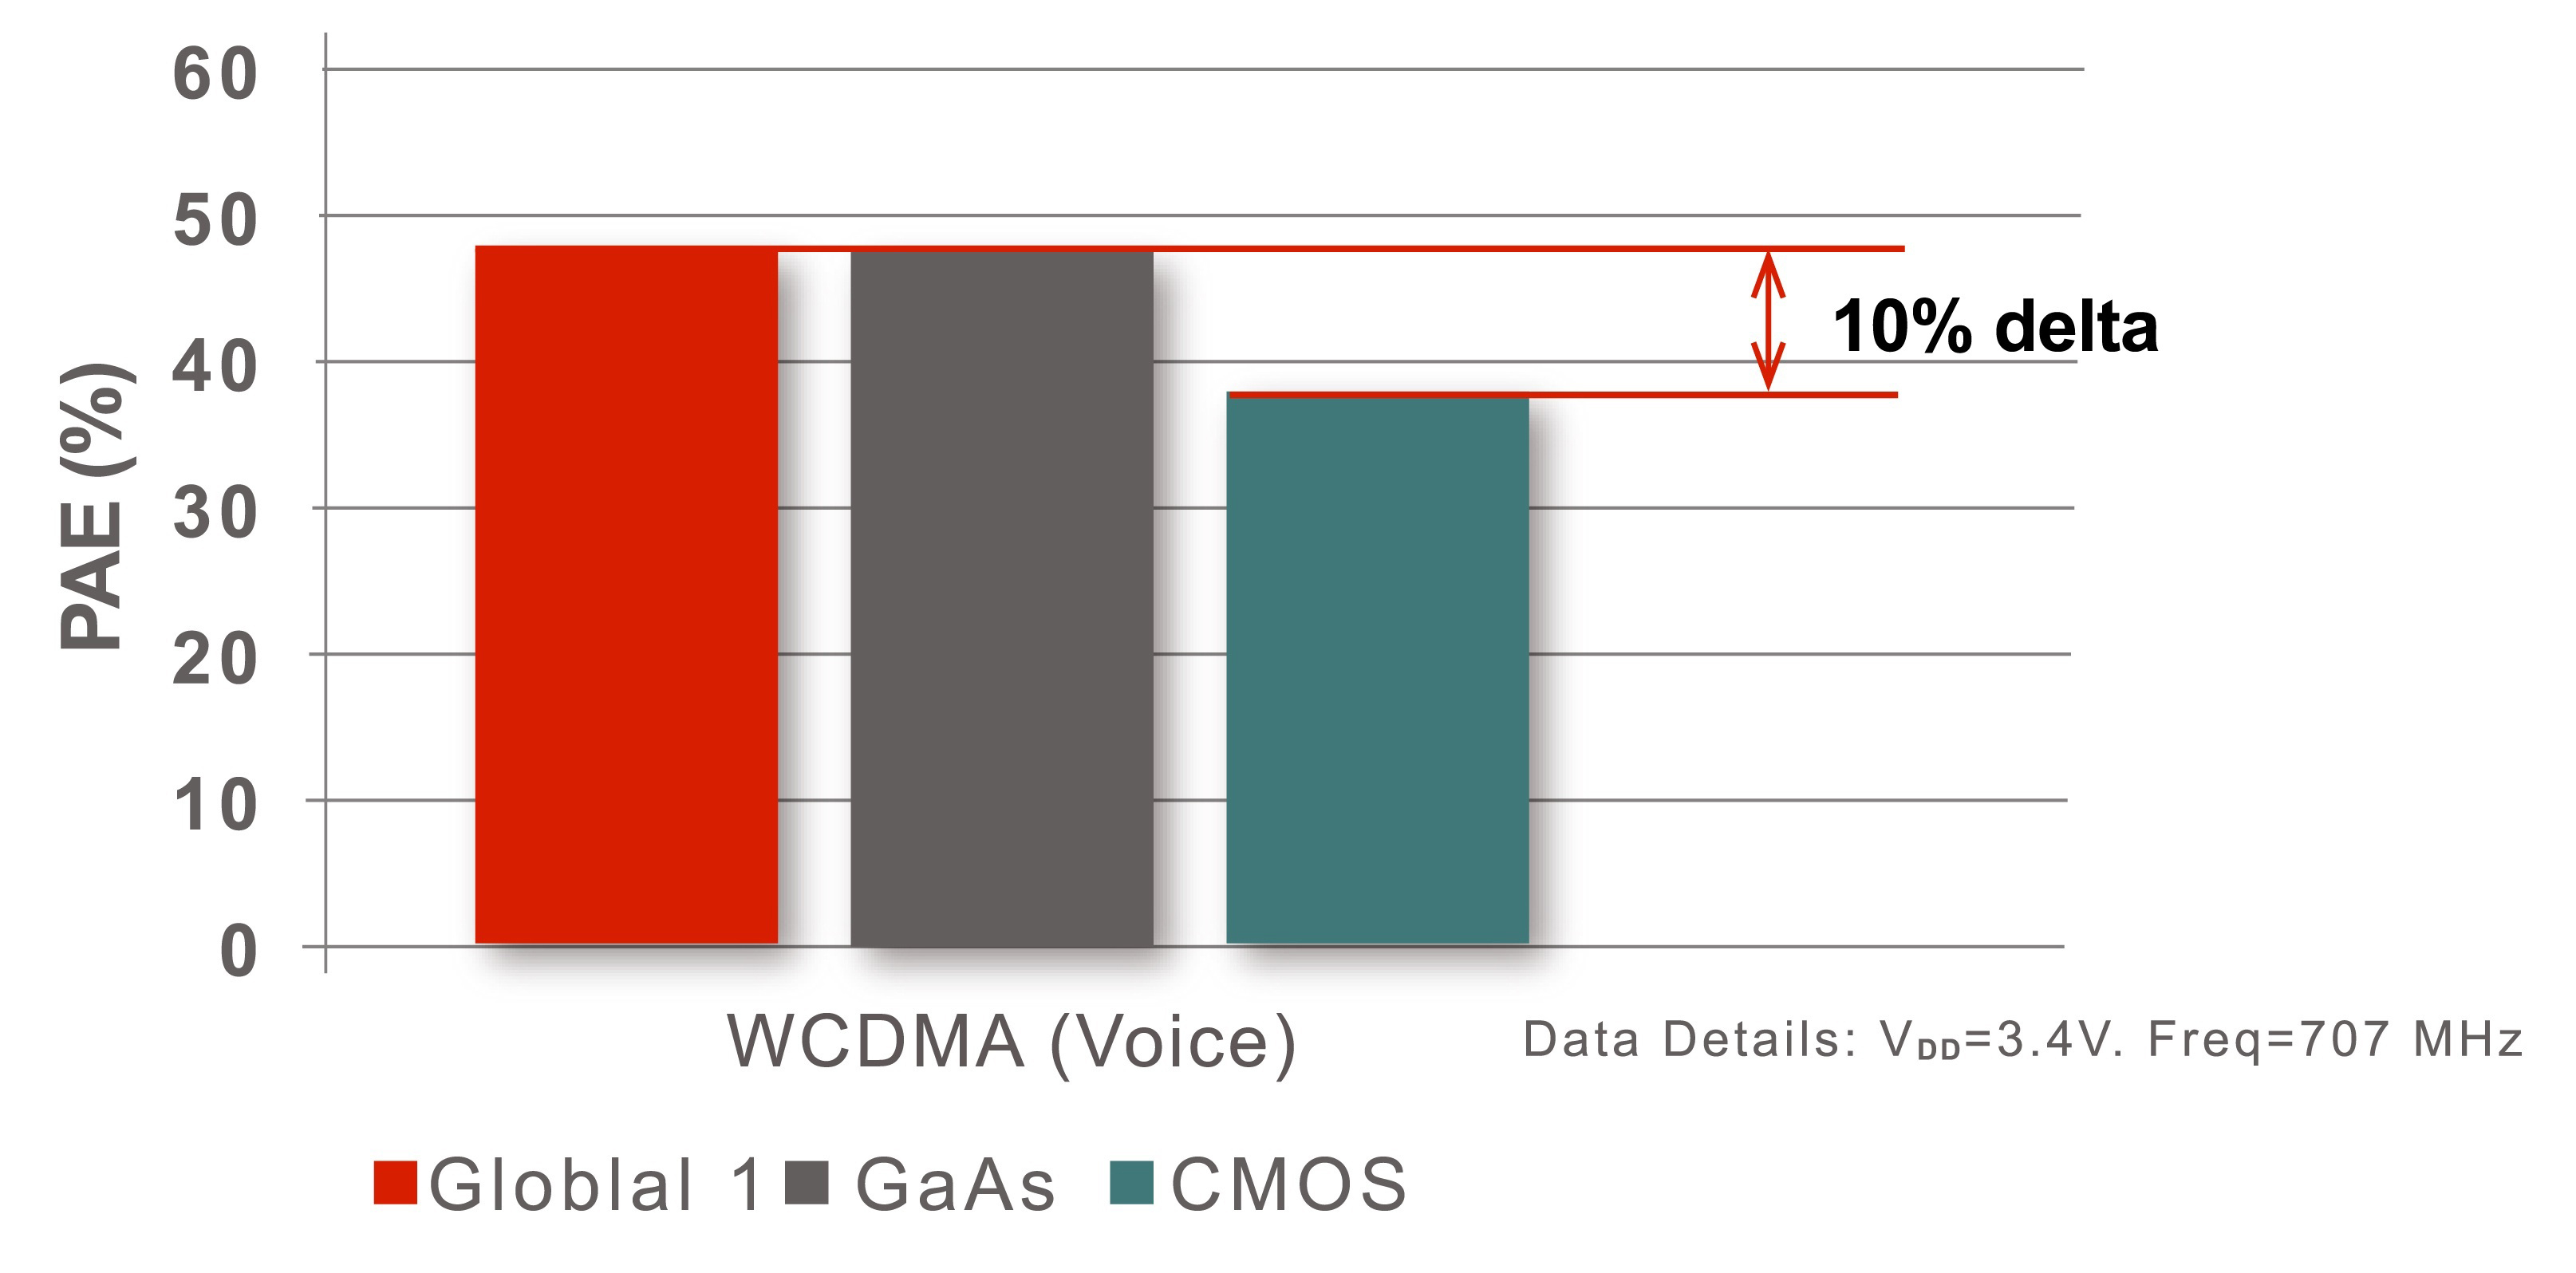 The UltraCMOS® Global 1 power amplifier (PA) is the industry's first to match gallium arsenide (GaAs) performance and exceed the performance of existing CMOS PAs by 10 percentage points, which represents a 33-percent efficiency increase. (Graphic: Business Wire)